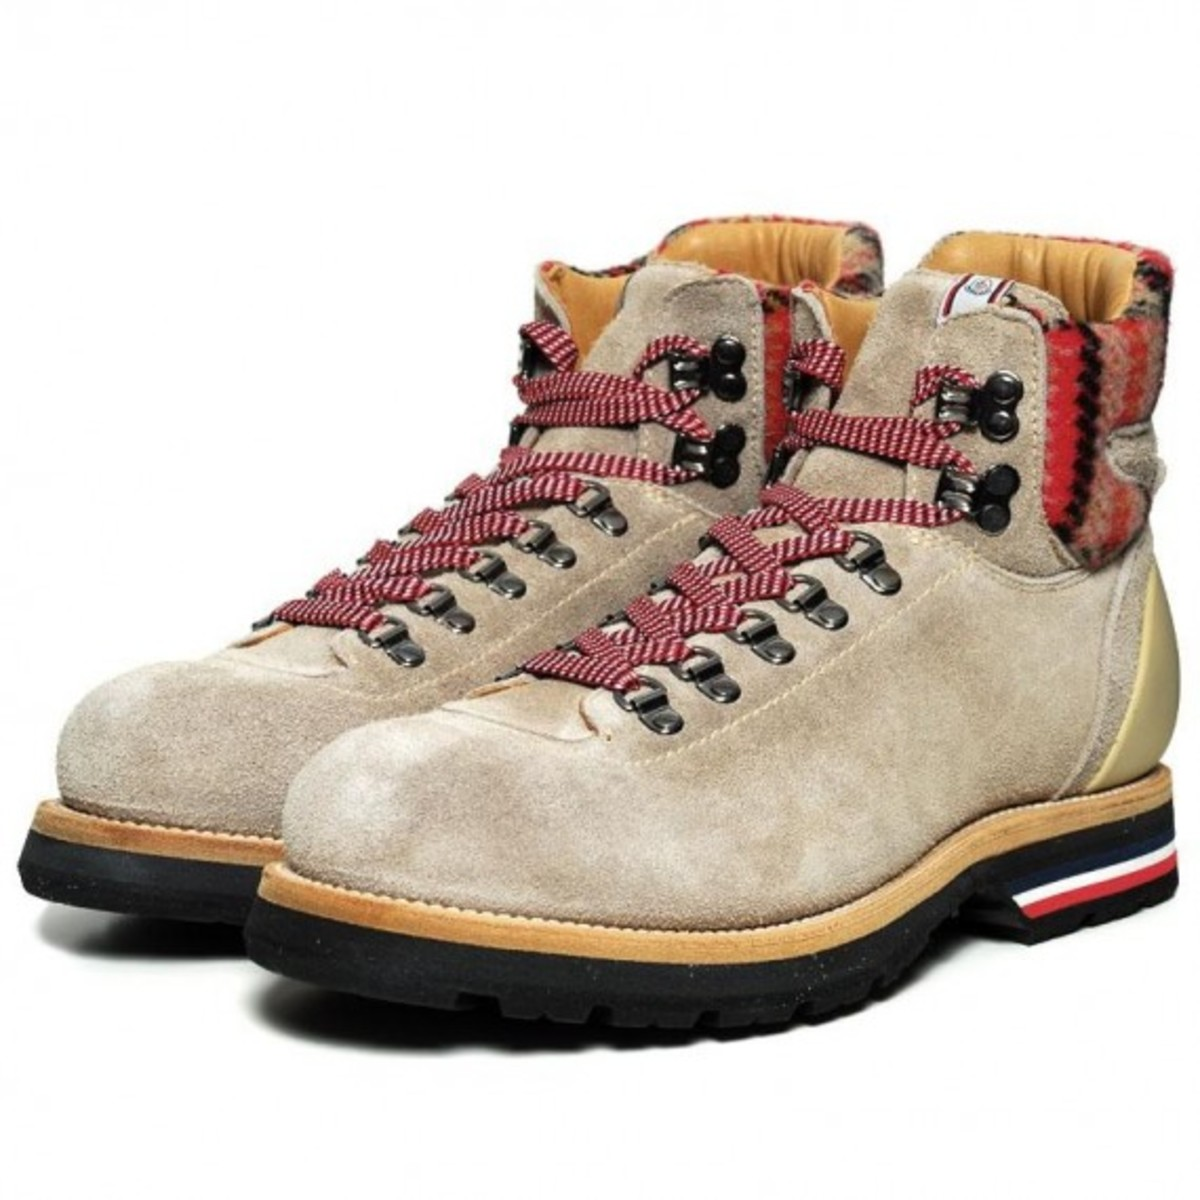 wool-patch-suede-mountain-boot-01